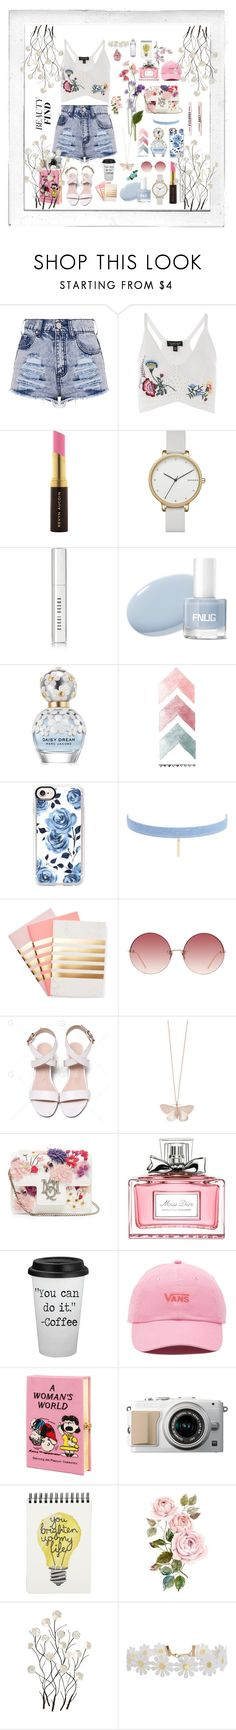 """""""short👒🌟"""" by olivia204 ❤ liked on Polyvore featuring Polaroid, Topshop, Kevyn Aucoin, Skagen, Bobbi Brown Cosmetics, Marc Jacobs, Casetify, Jules Smith, StudioSarah and Linda Farrow"""